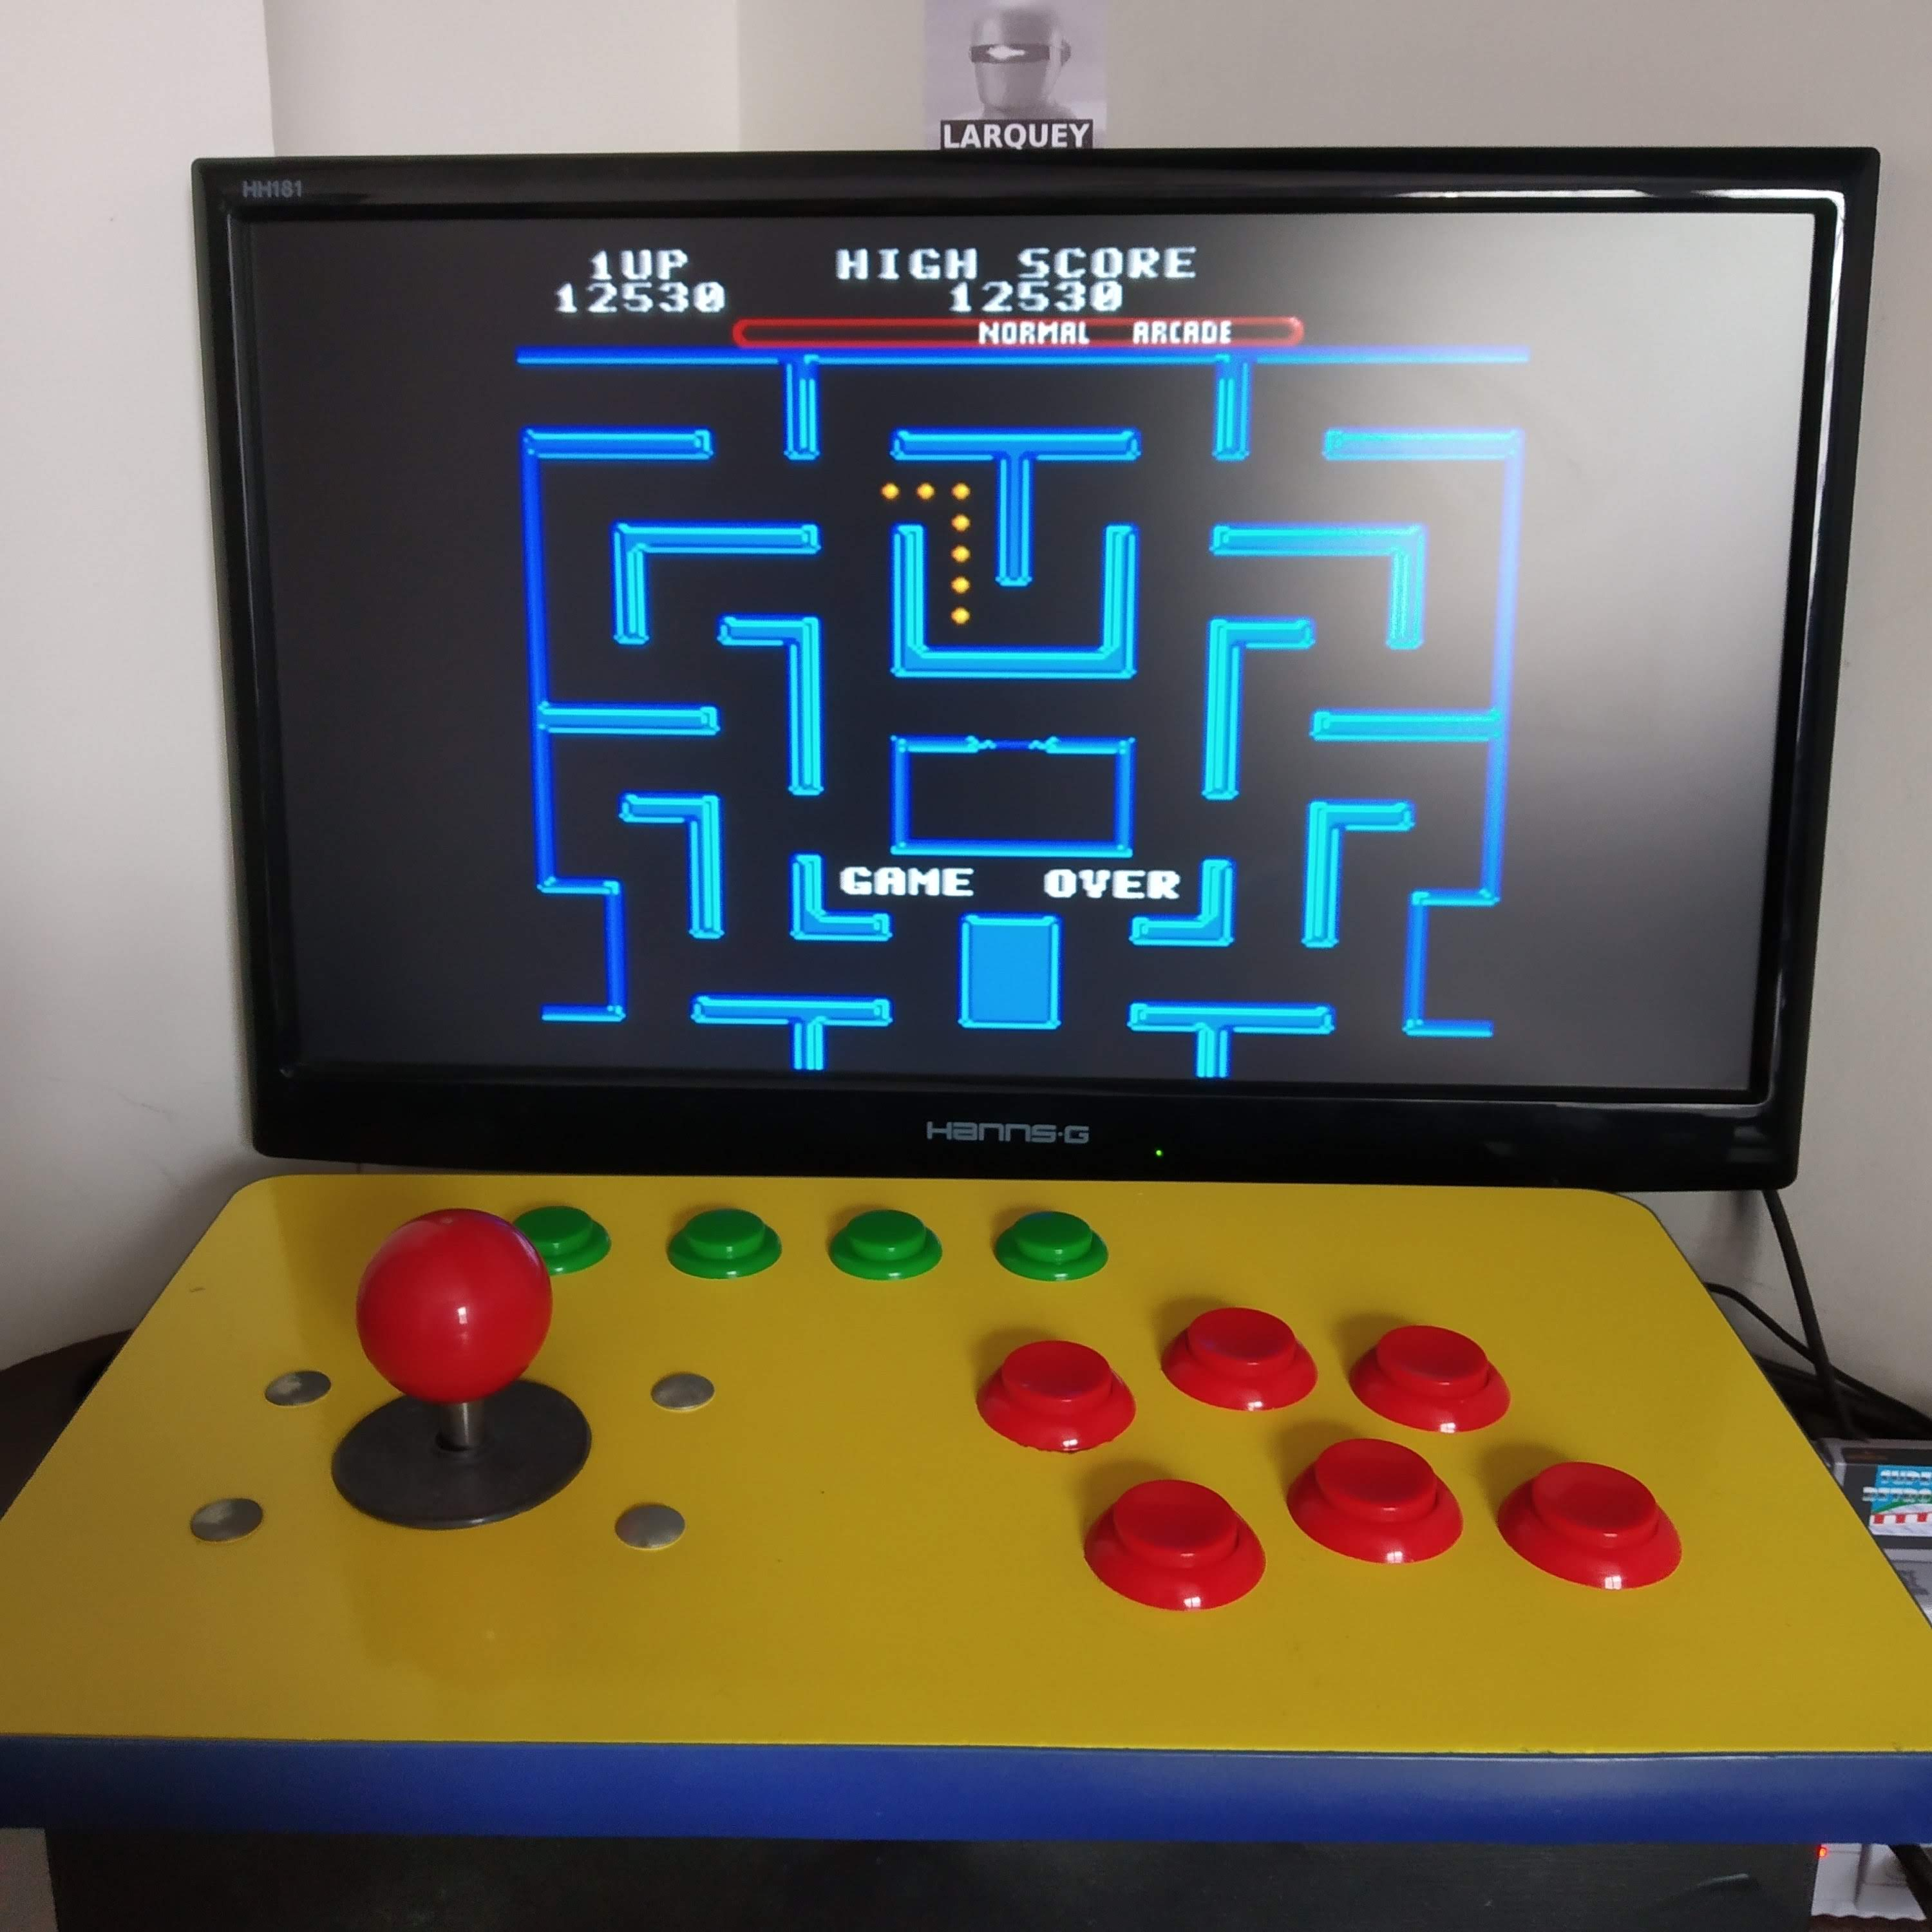 Larquey: Ms. Pac-Man [Off/Normal/Arcade/Level 4 Start] (SNES/Super Famicom Emulated) 12,530 points on 2020-08-16 09:36:20